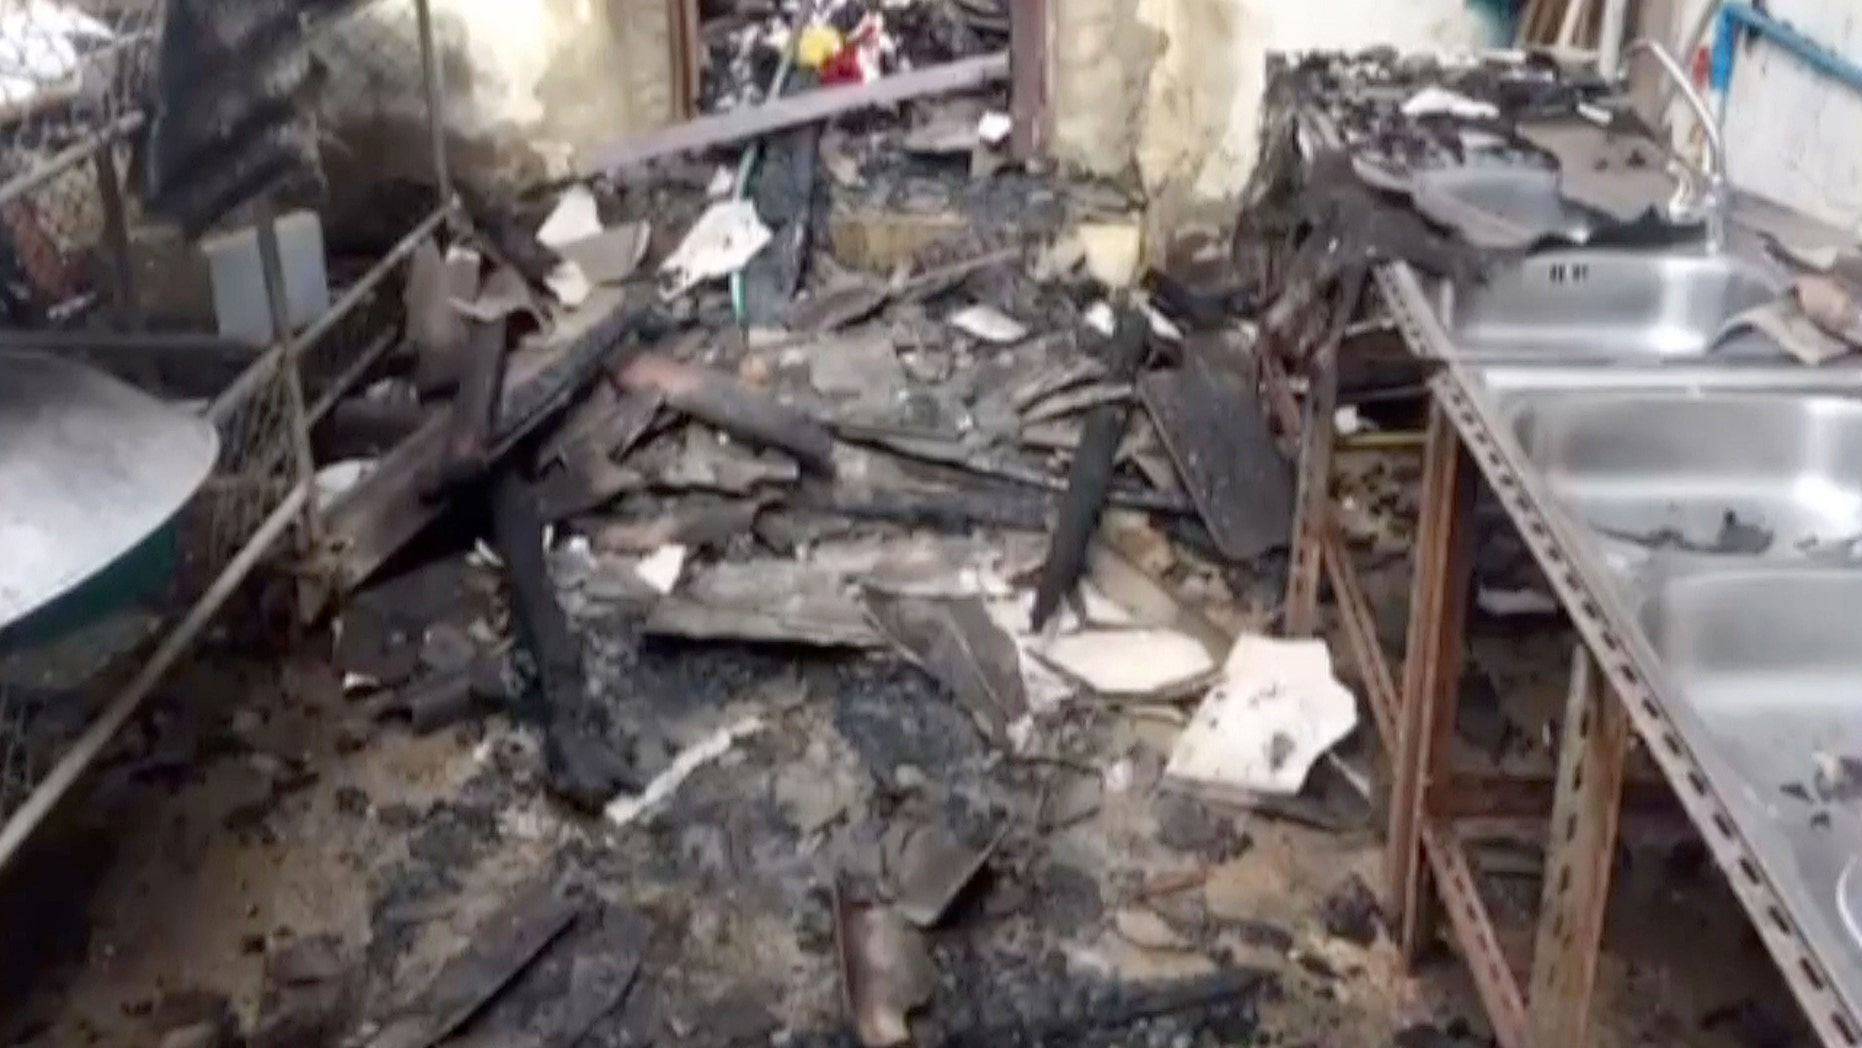 May 23, 2016: This image made from video shows the inside of a damaged school dormitory where local police say 18 girls, ranging from 5 to 12 years old, died in a fire in Chiang Rai province, northern Thailand.